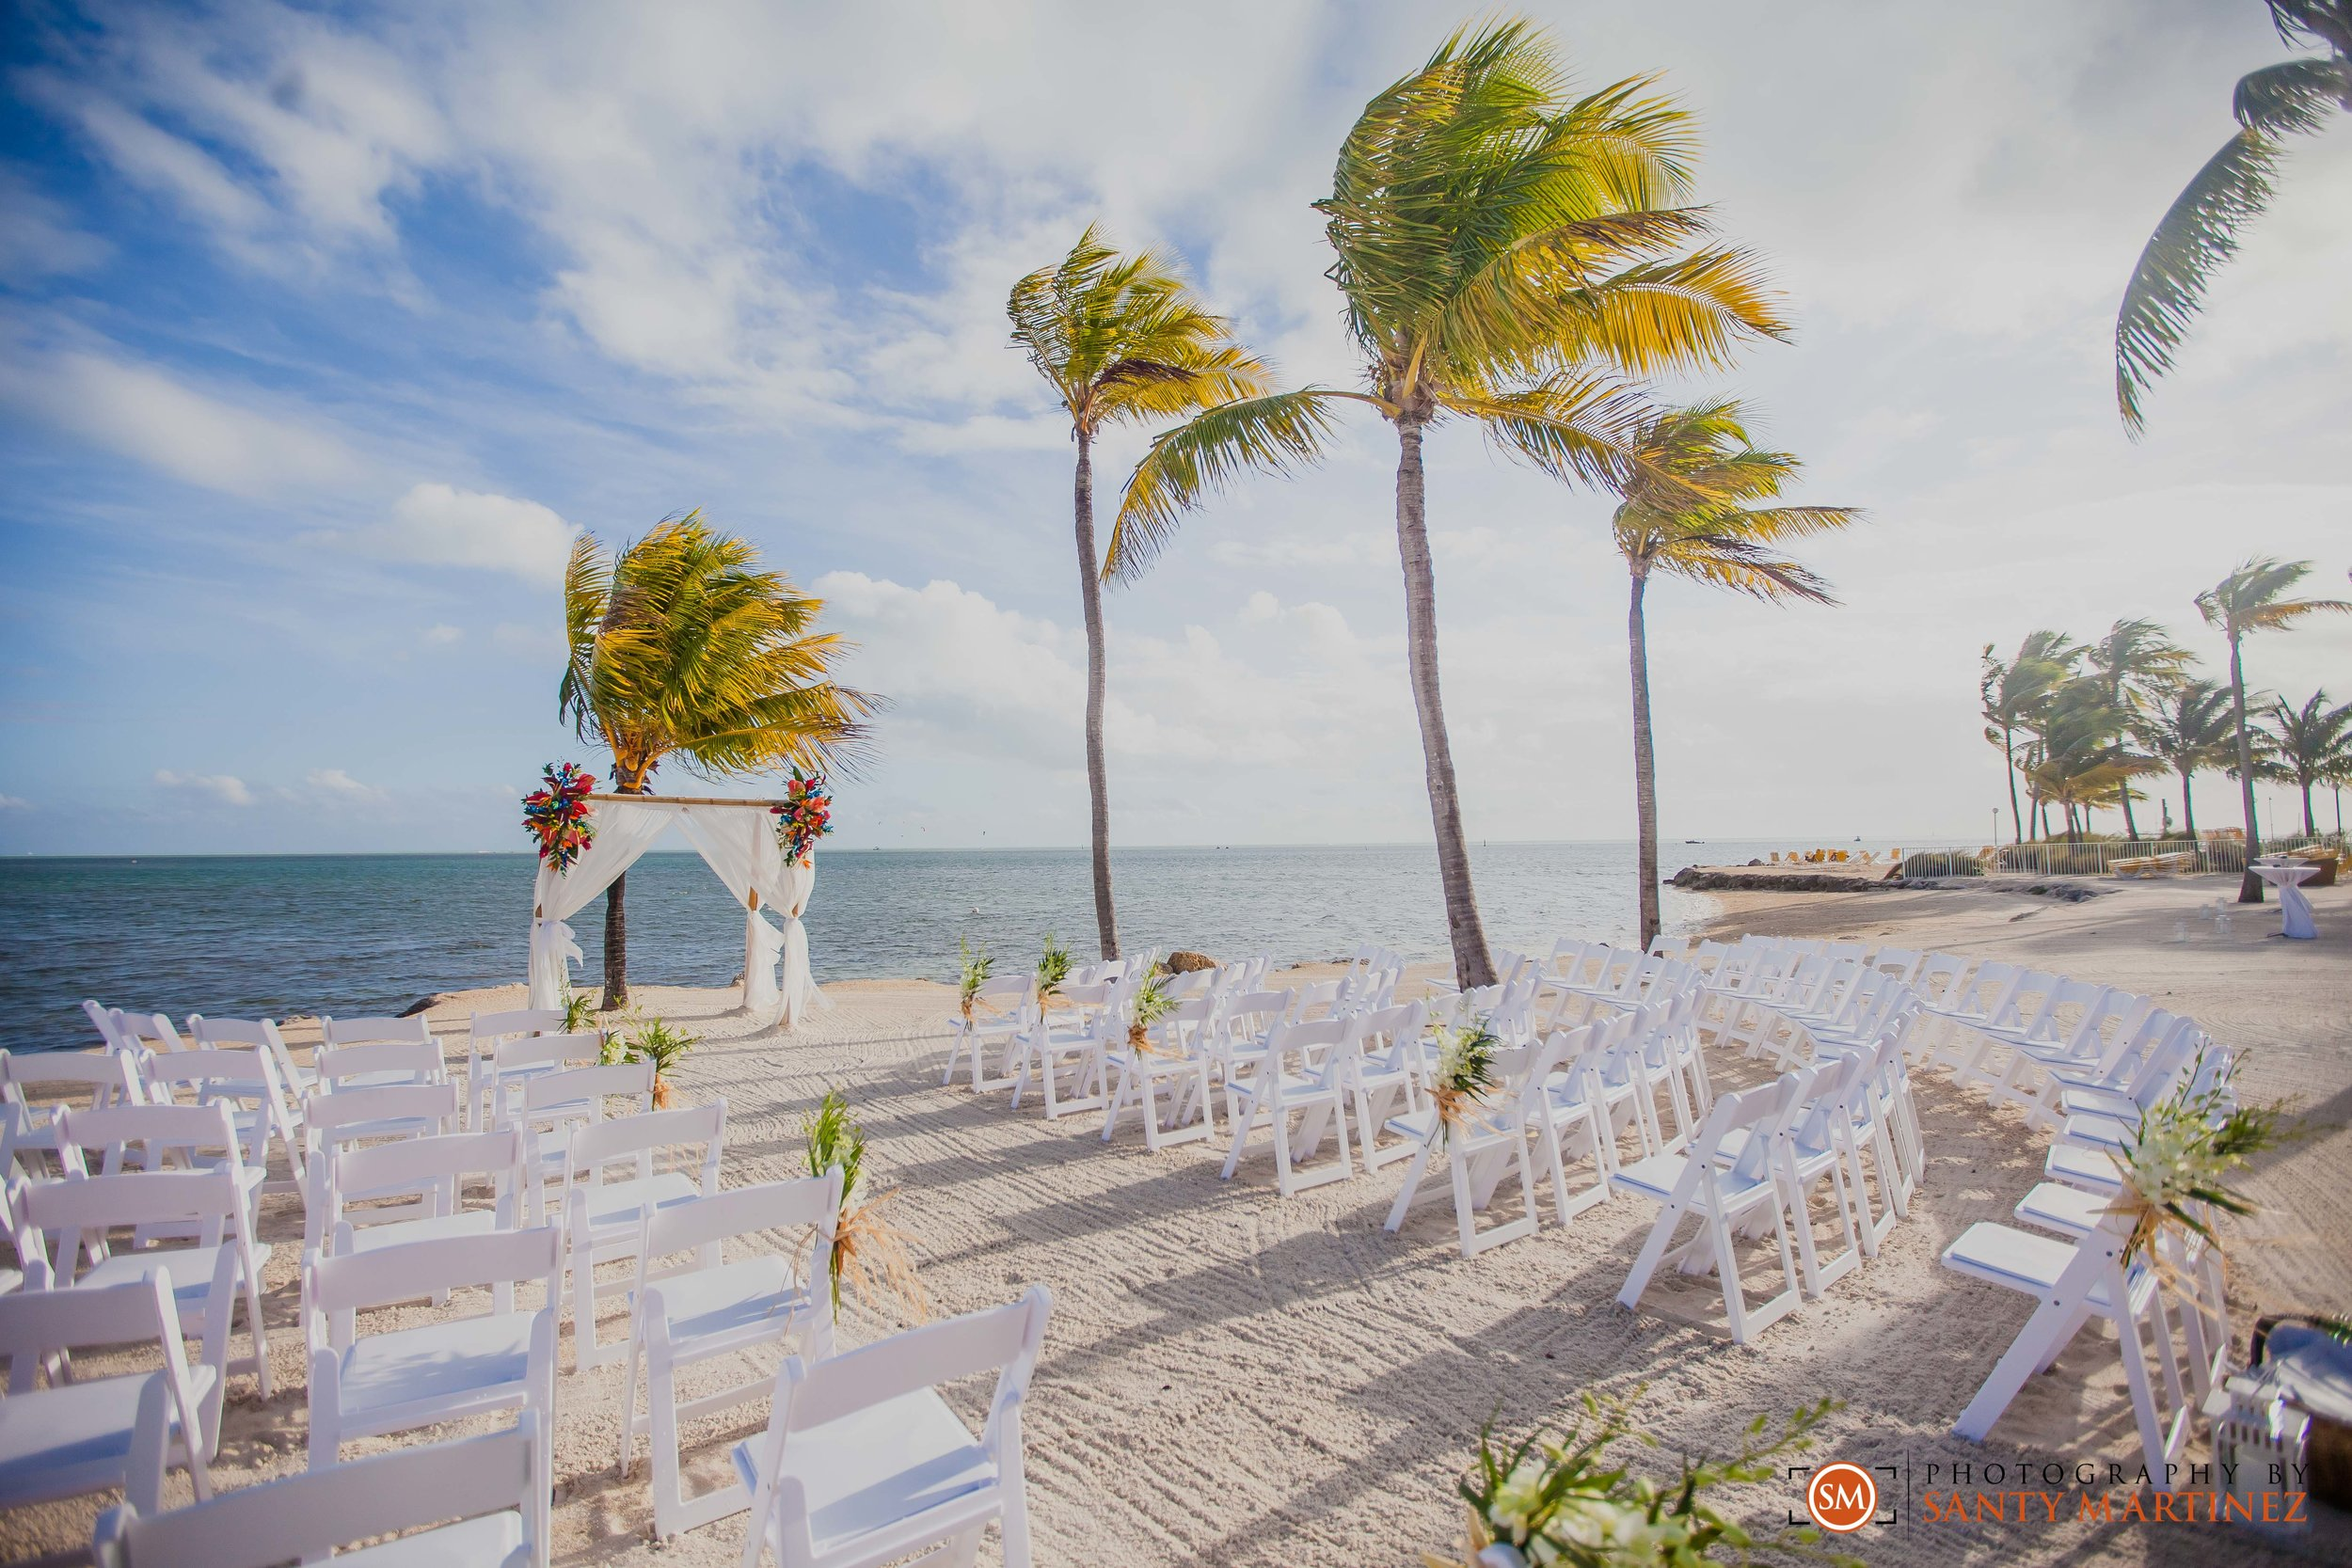 Postcard Inn Islamorada Wedding - Photography by Santy Martinez-0496.jpg